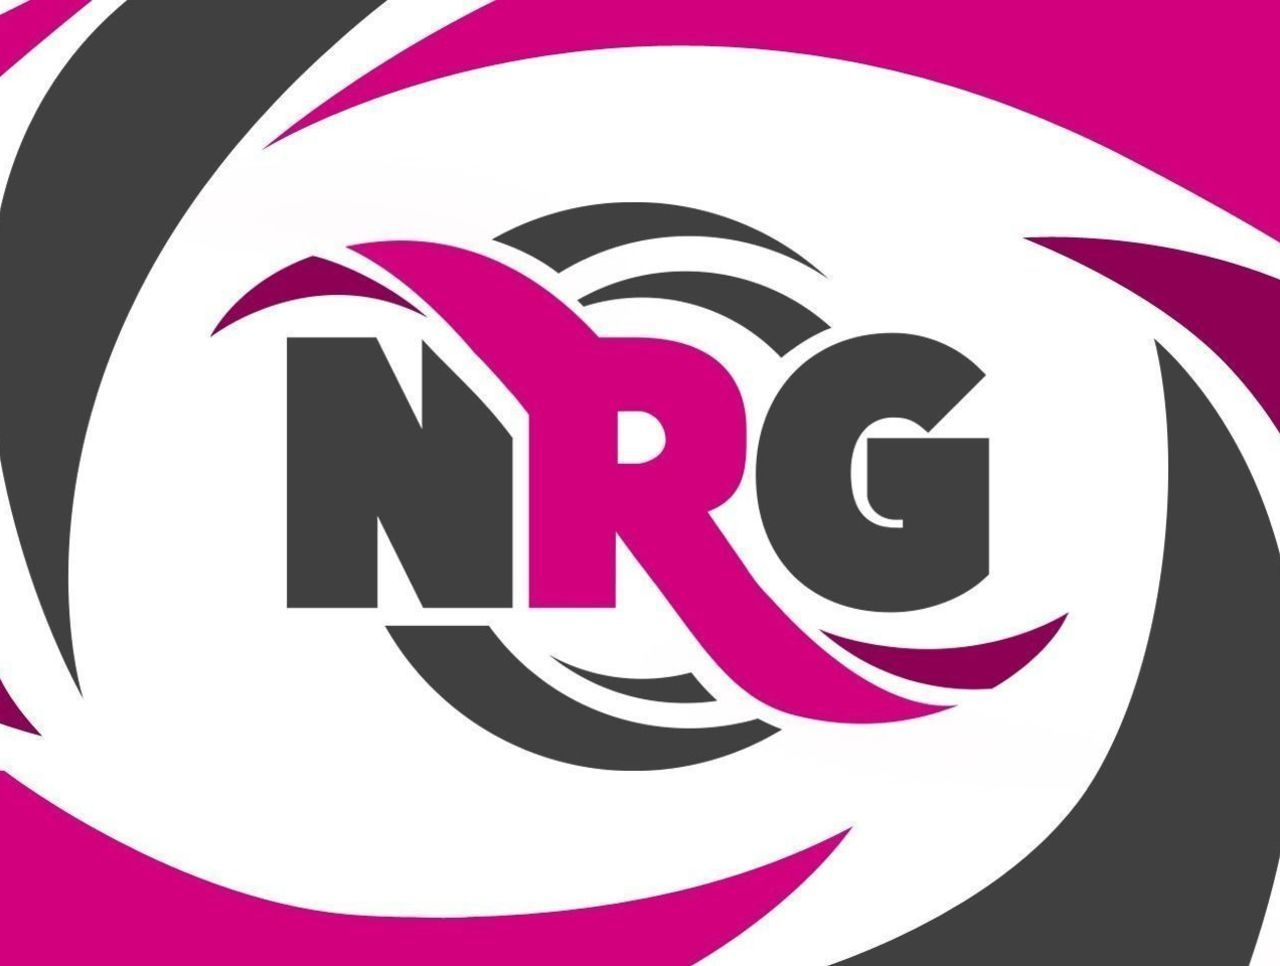 This is NRG, and they consist of some of the worlds best